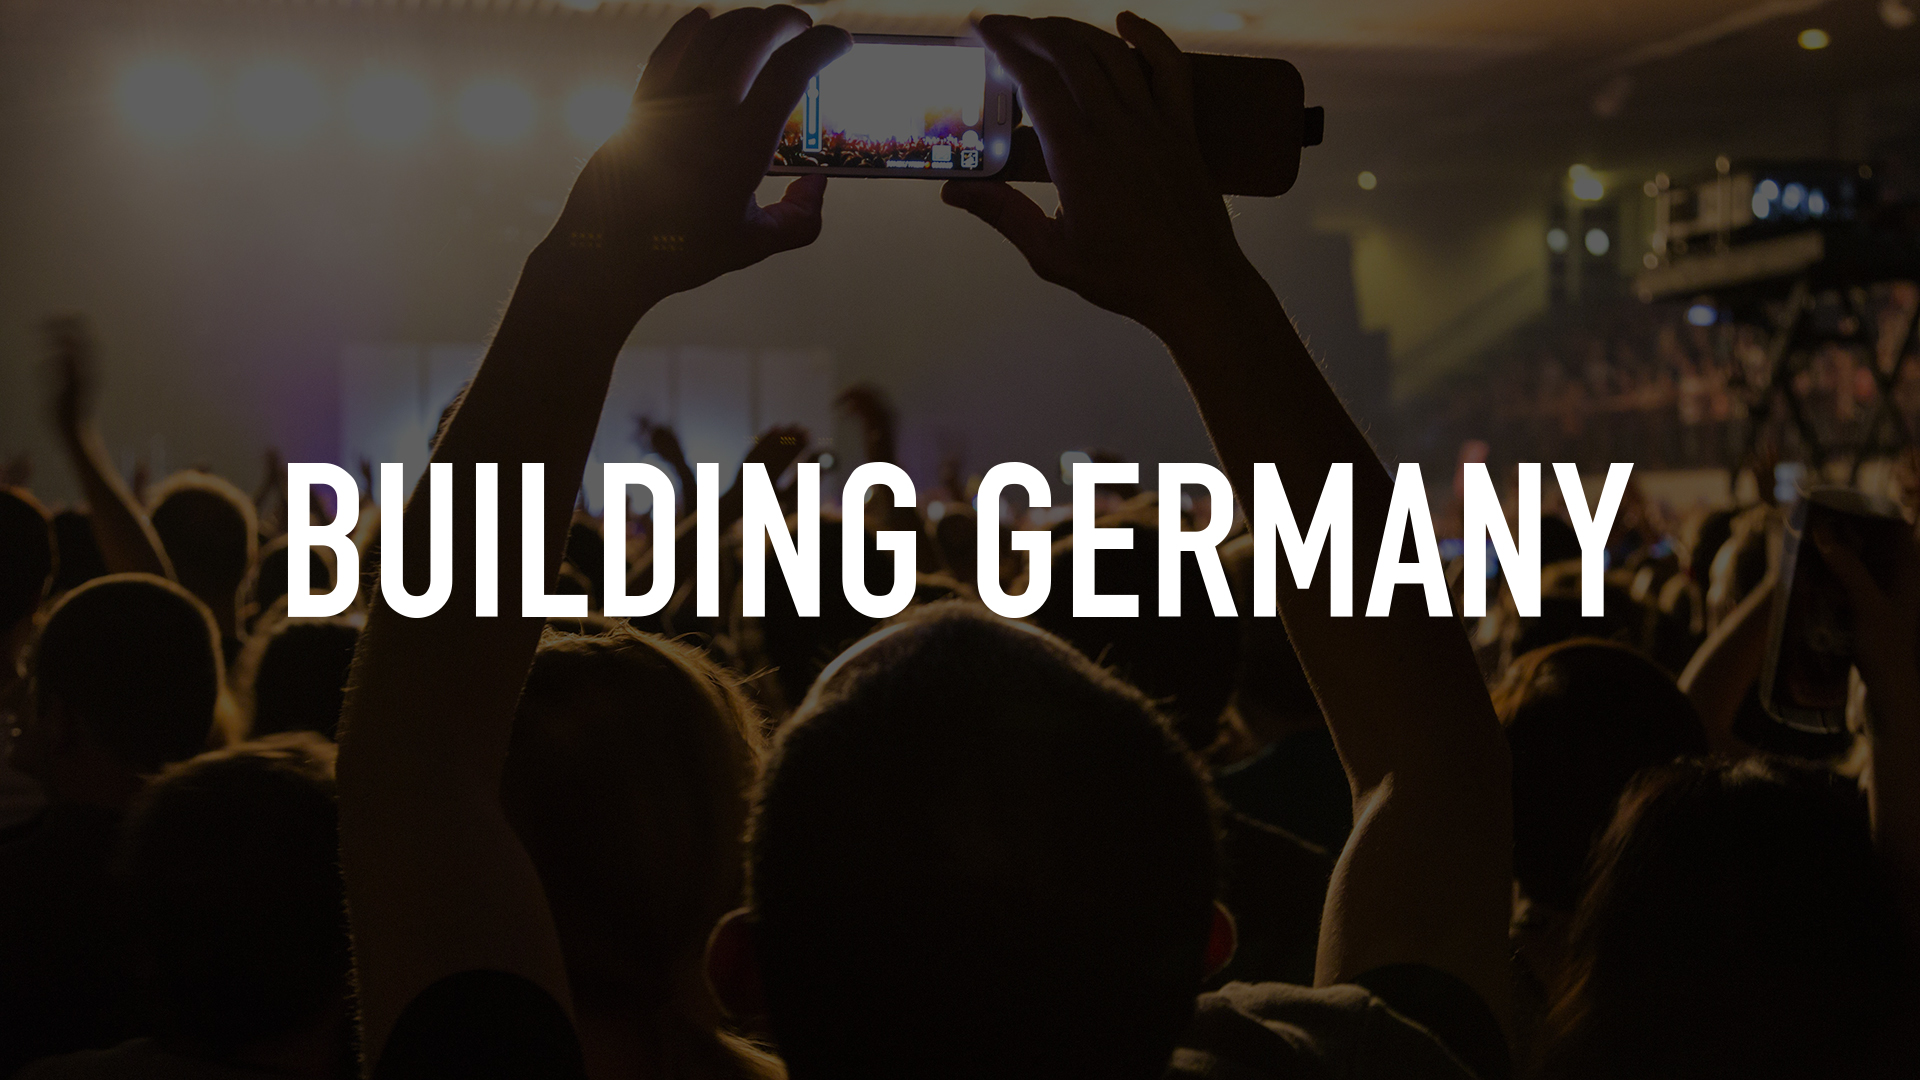 Building Germany